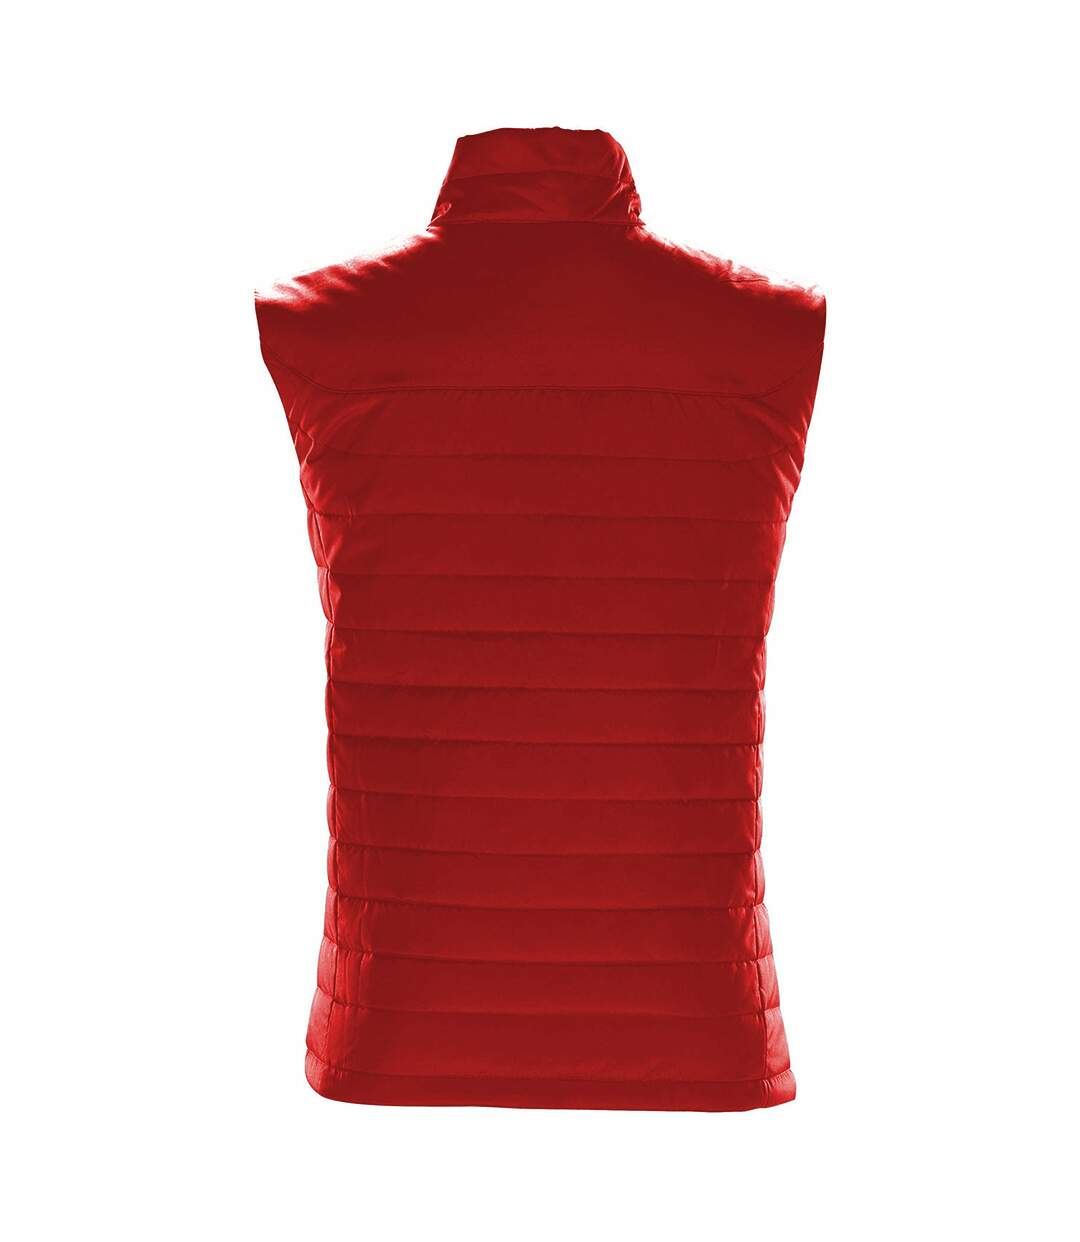 Stormtech Mens Quilted Nautilus Vest/Gilet (Bright Red) - UTBC4127